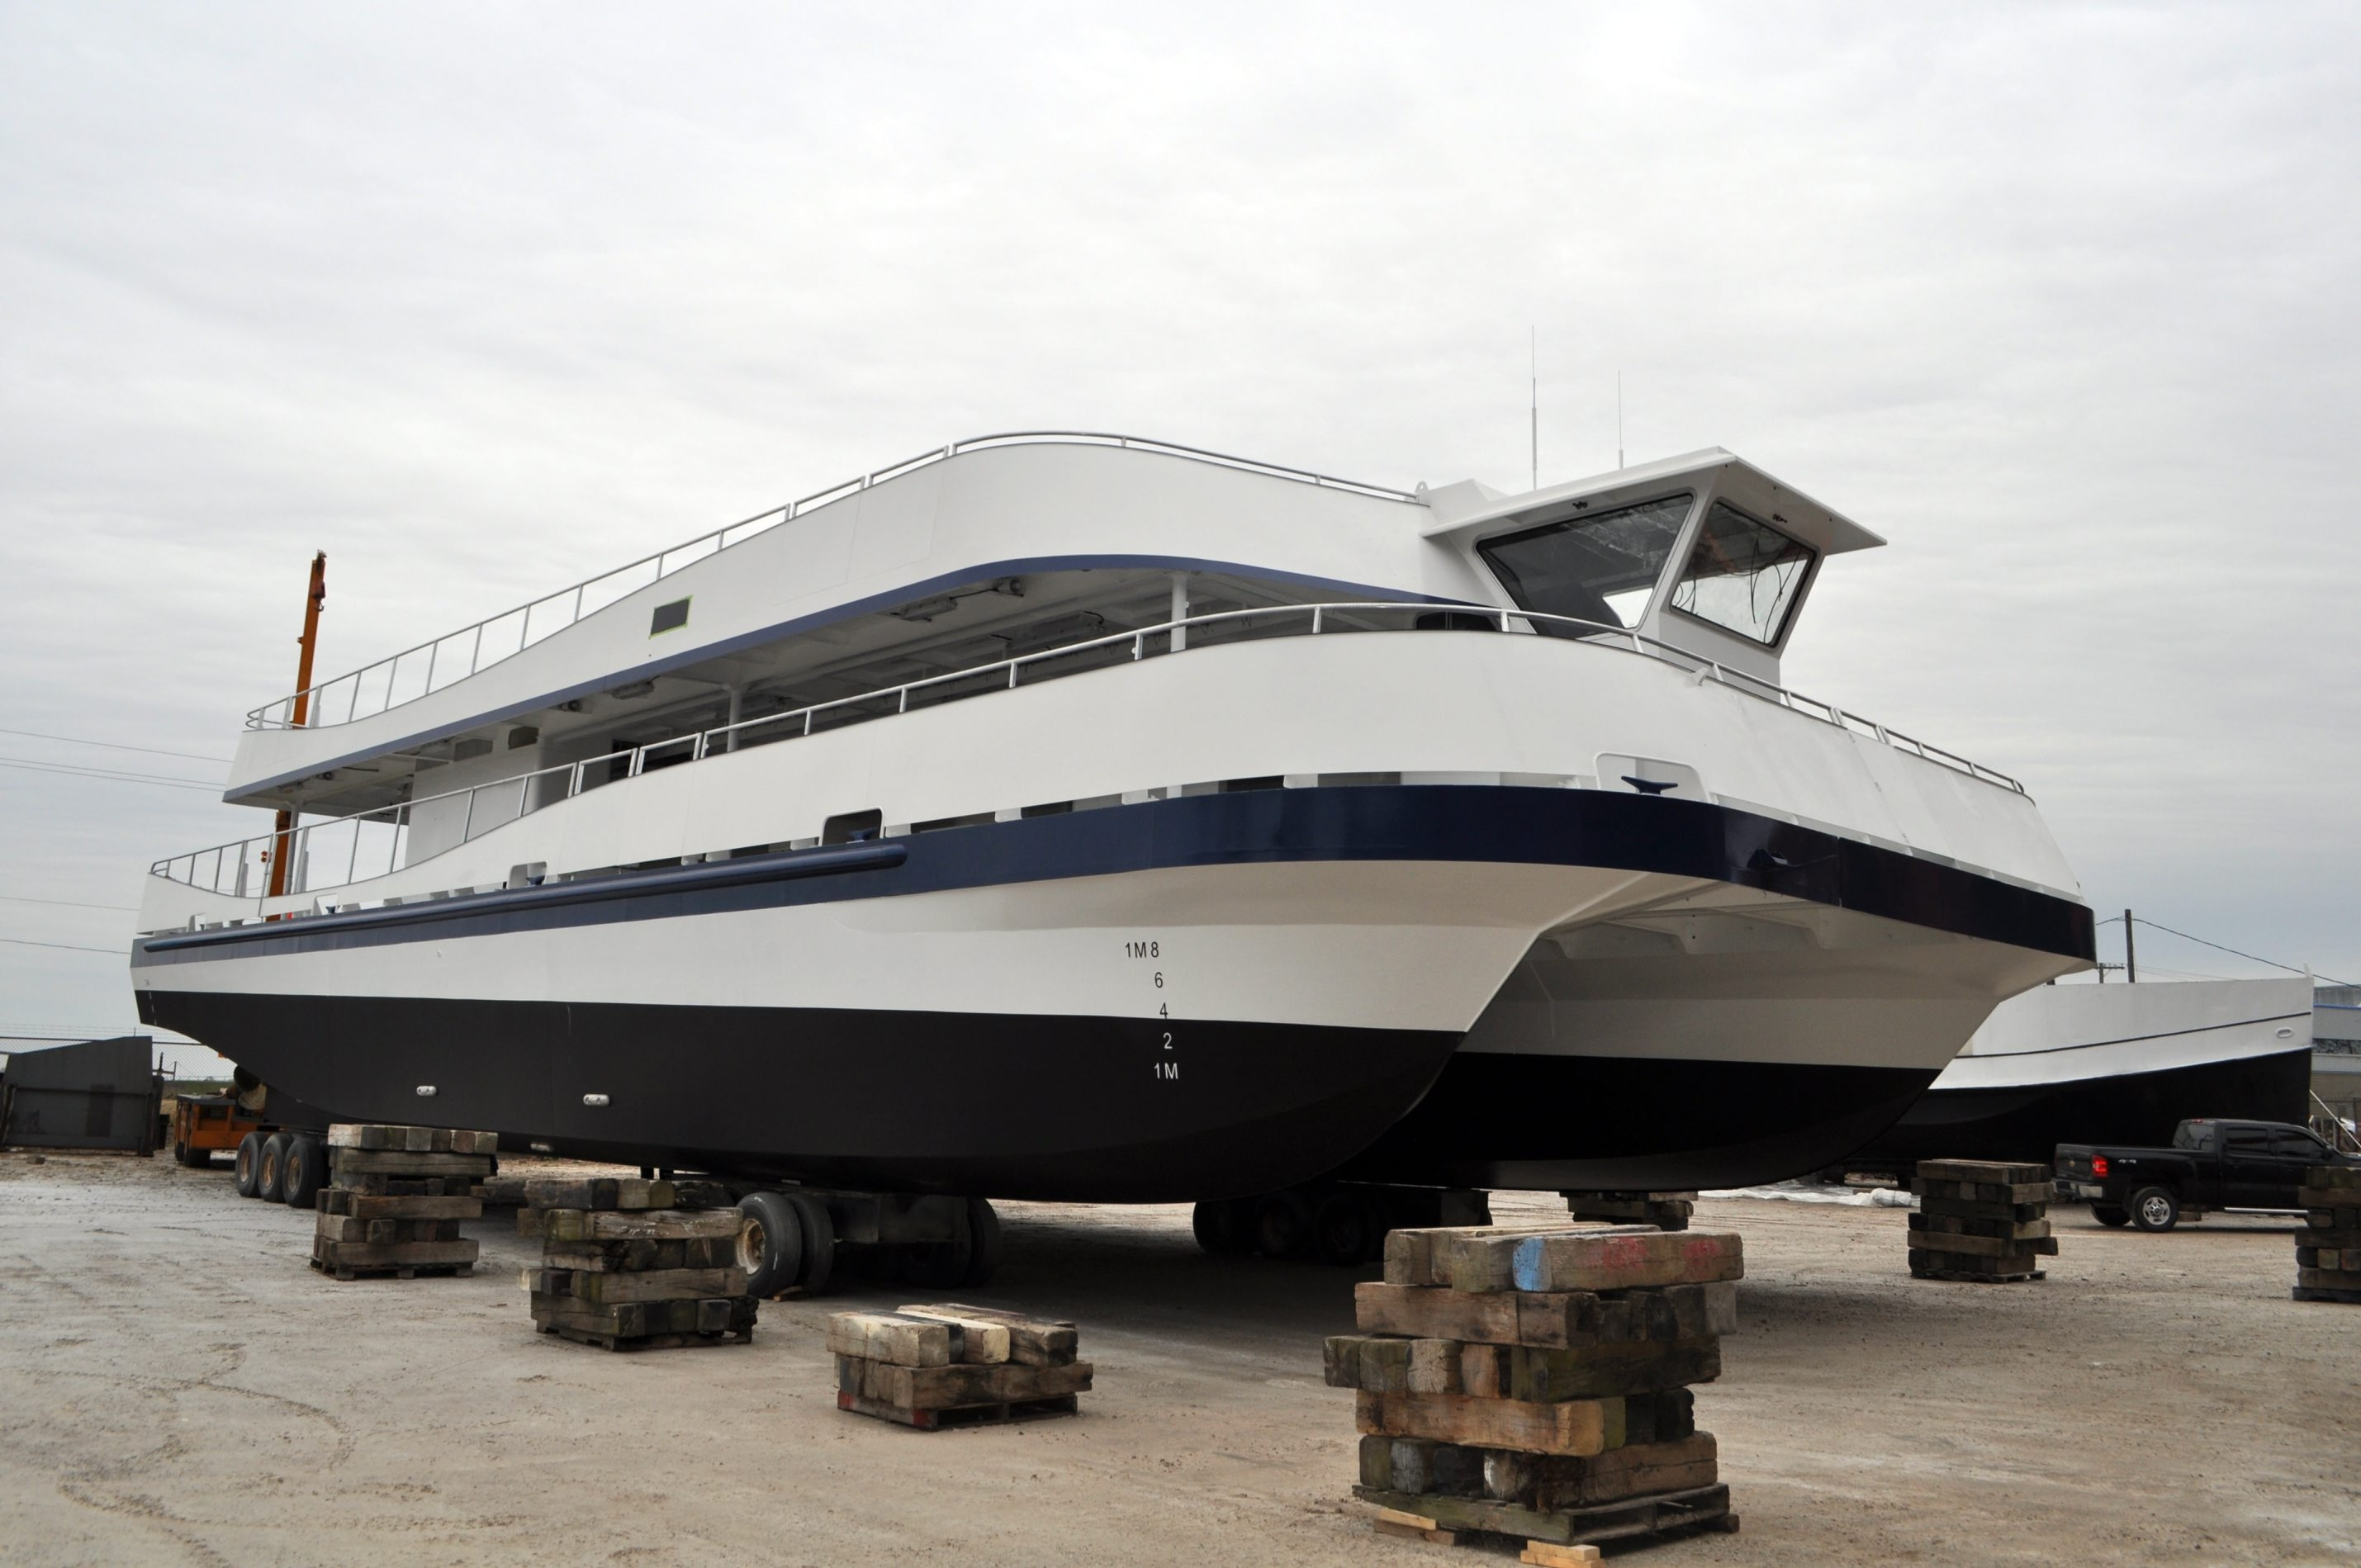 One of the new 700-passenger catamarans to be used by Hornblower Niagara Cruises to carry passengers below Niagara Falls from Niagara Falls, Ont., side of the border.